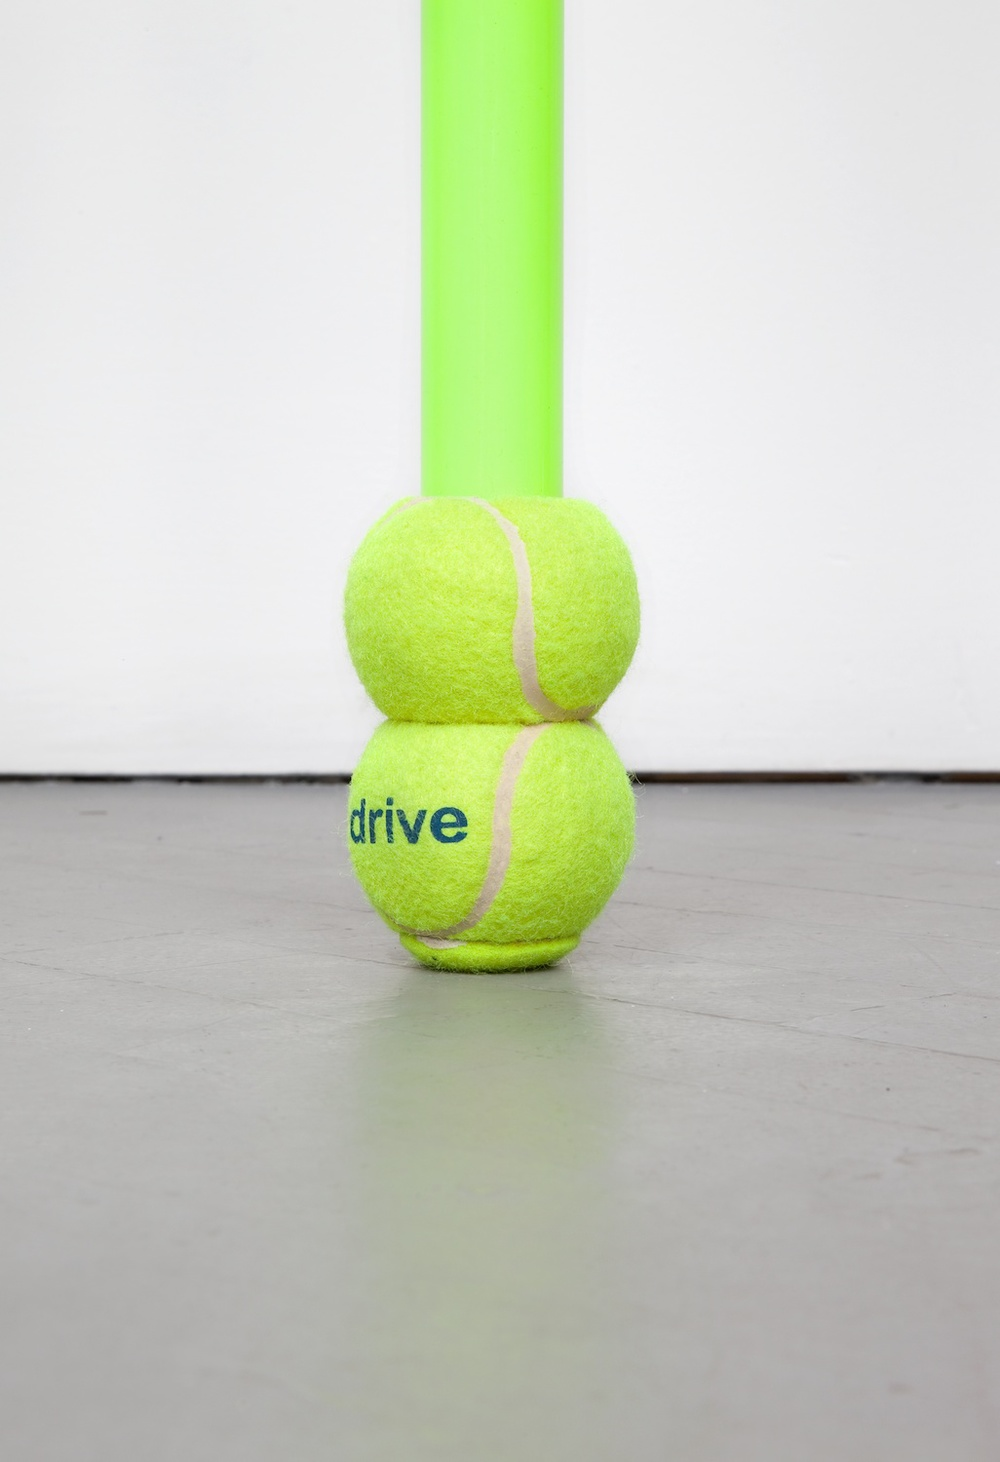 Chadwick Rantanen  Telescopic Pole (Drive Medical/Double Ball)  (Detail) 2012 Powdercoated aluminum, plastic, walkerballs 282h x 1 ½w in CR026